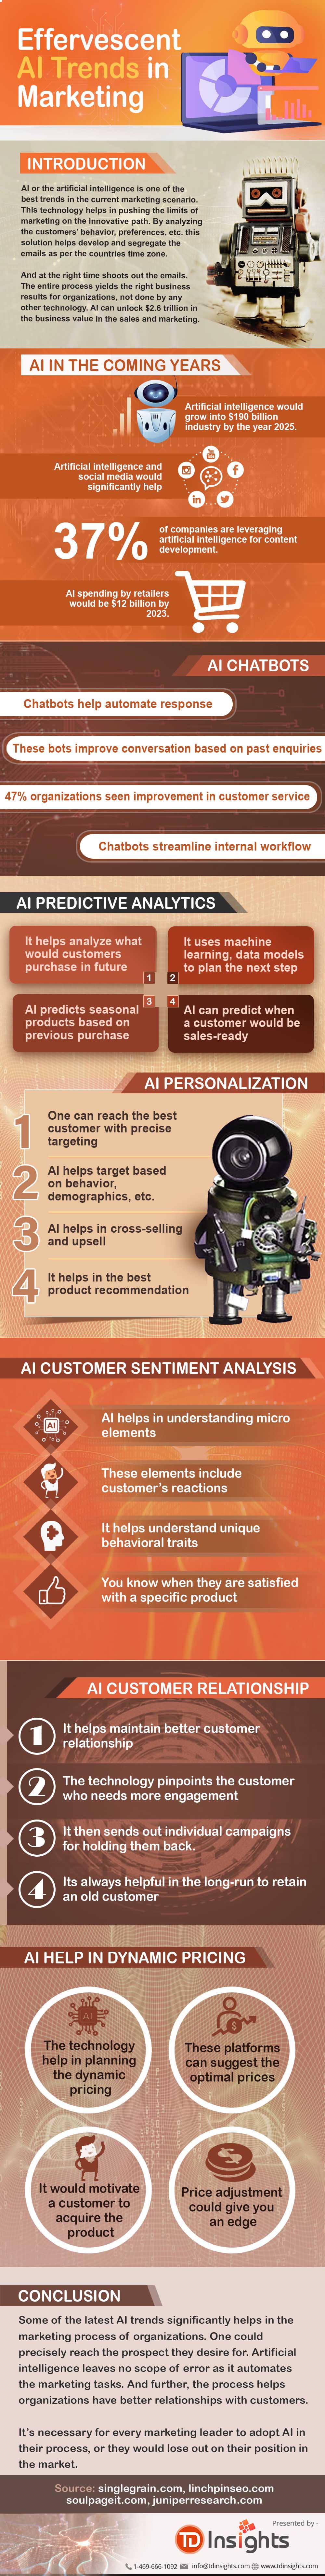 Effervescent AI Trends in Marketing